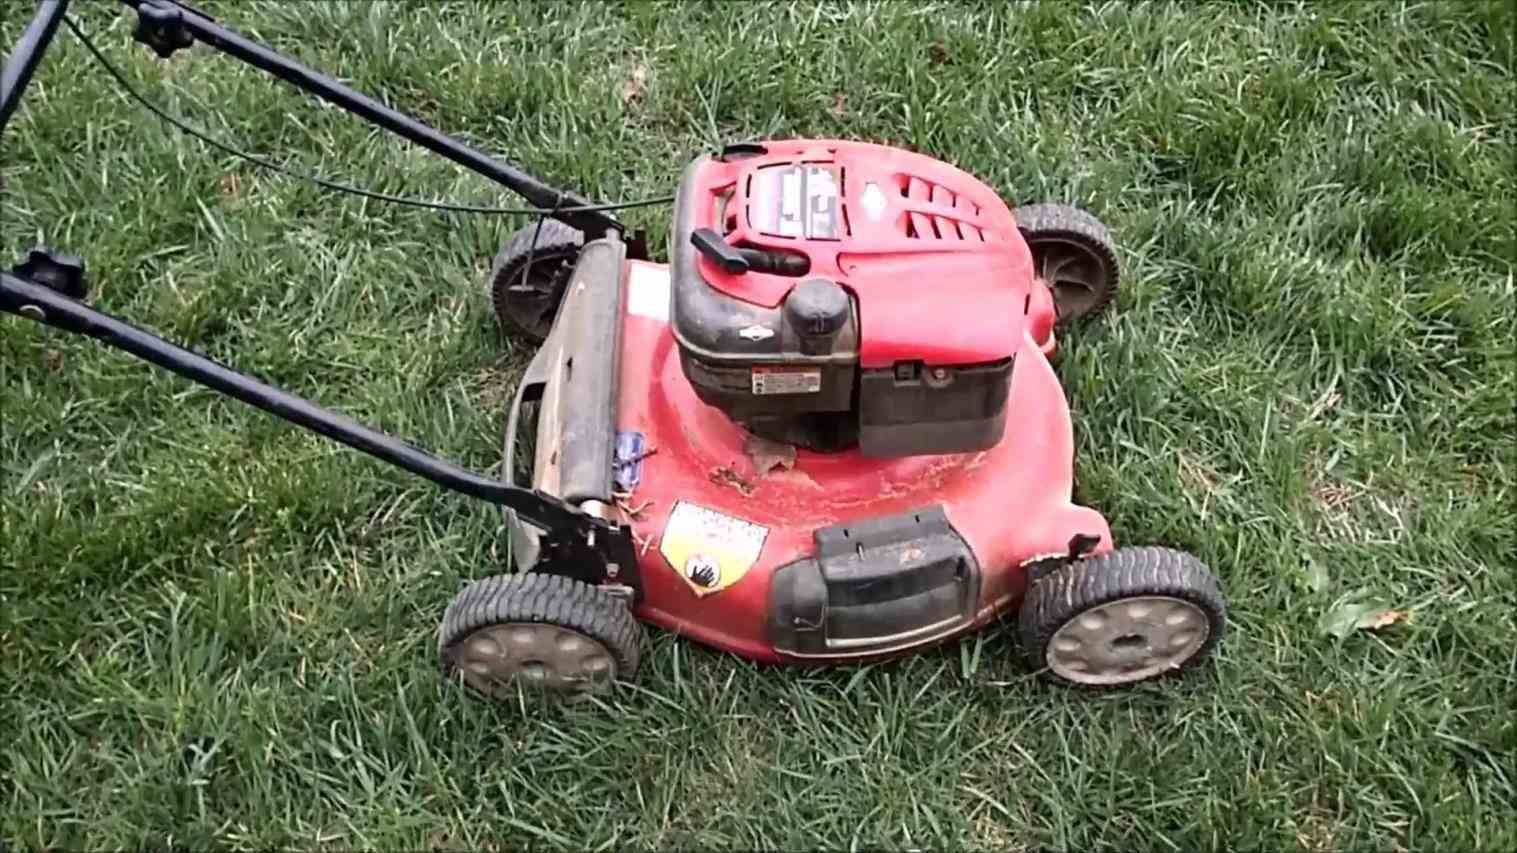 How to DIY Winterize / Store your Troy Bilt Lawn Mower for